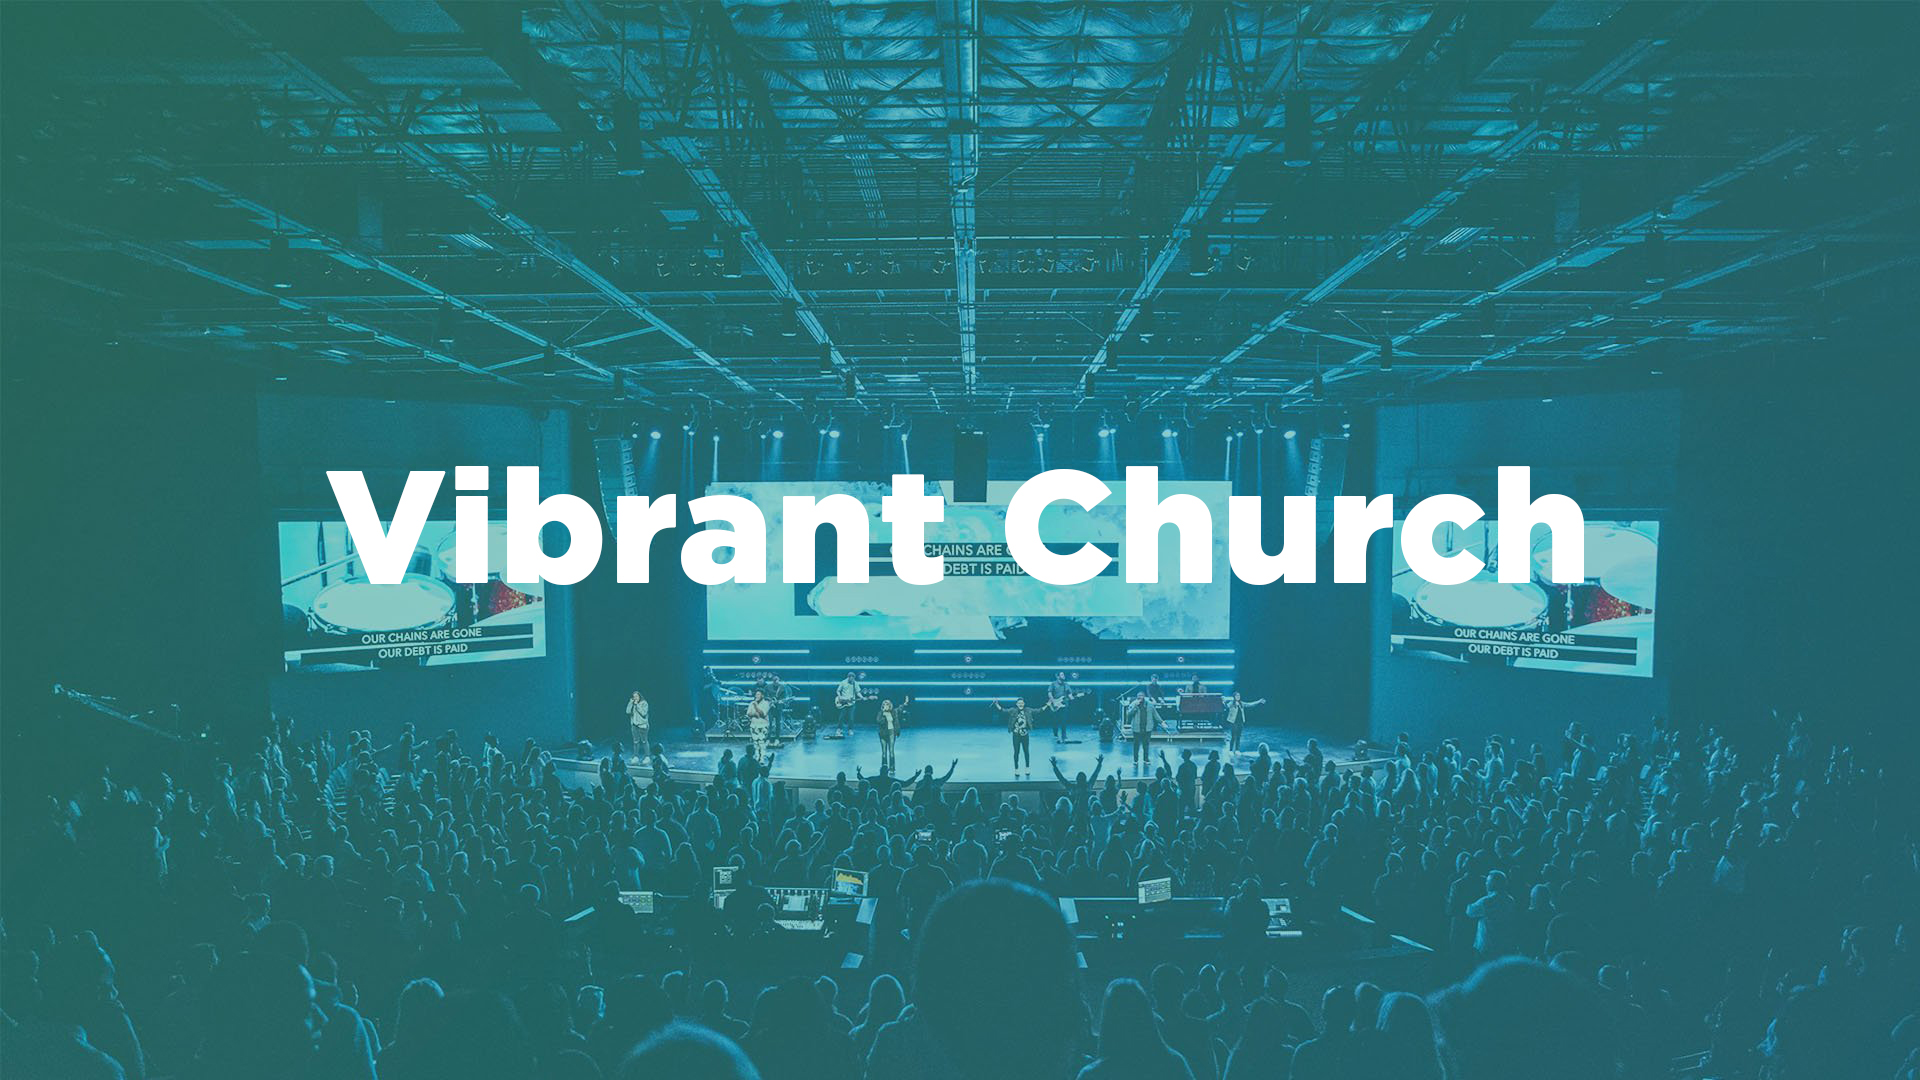 Virbant Church Ministry Solutions Case Study